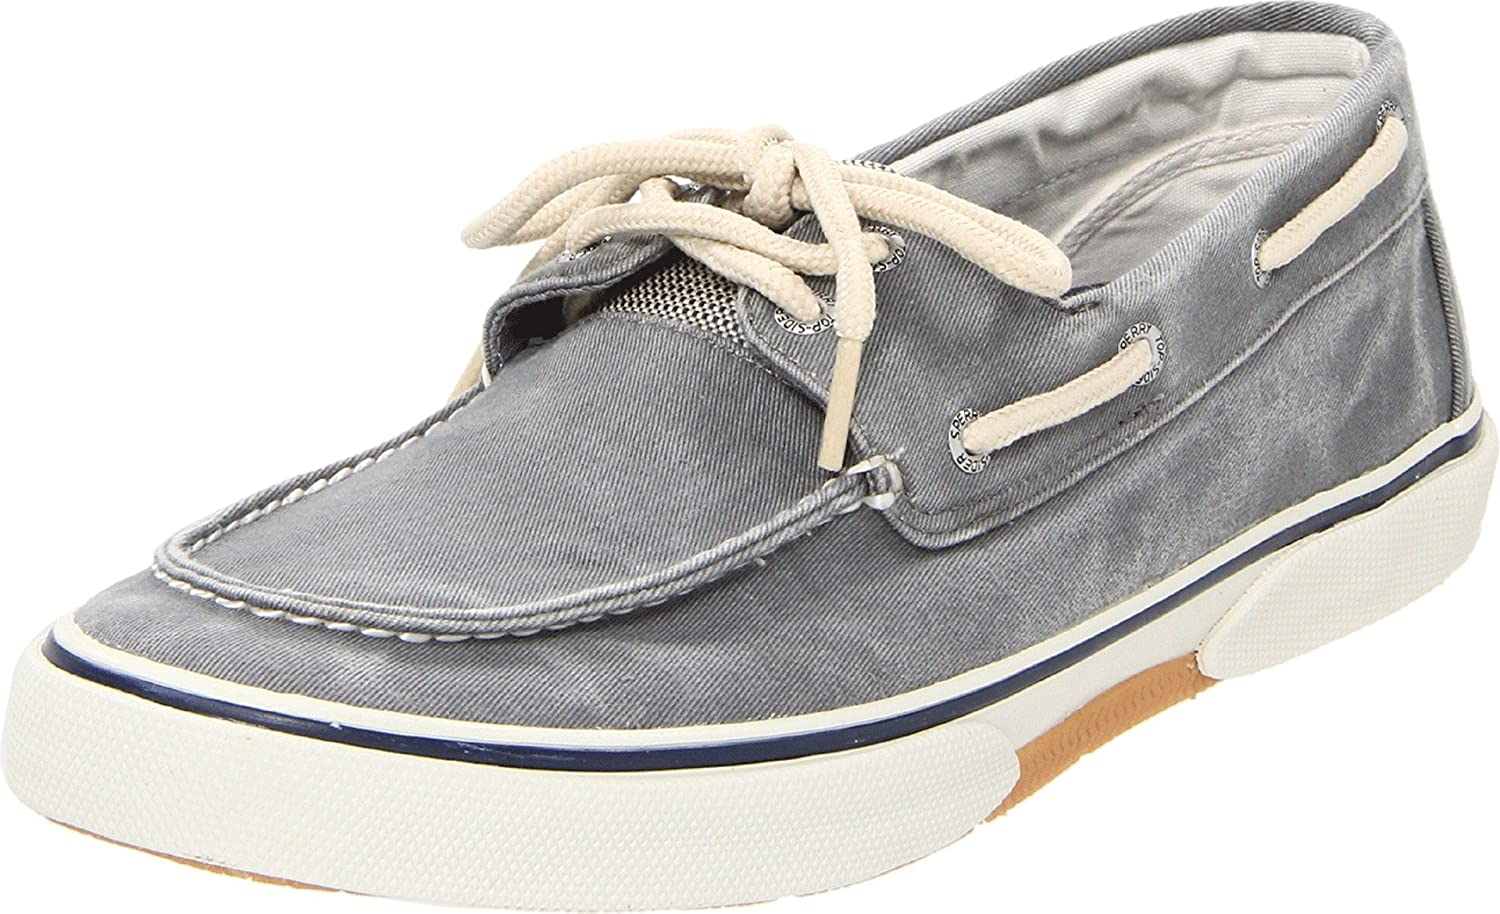 Sperry, Halyard Lace up Boat Shoe GRAY